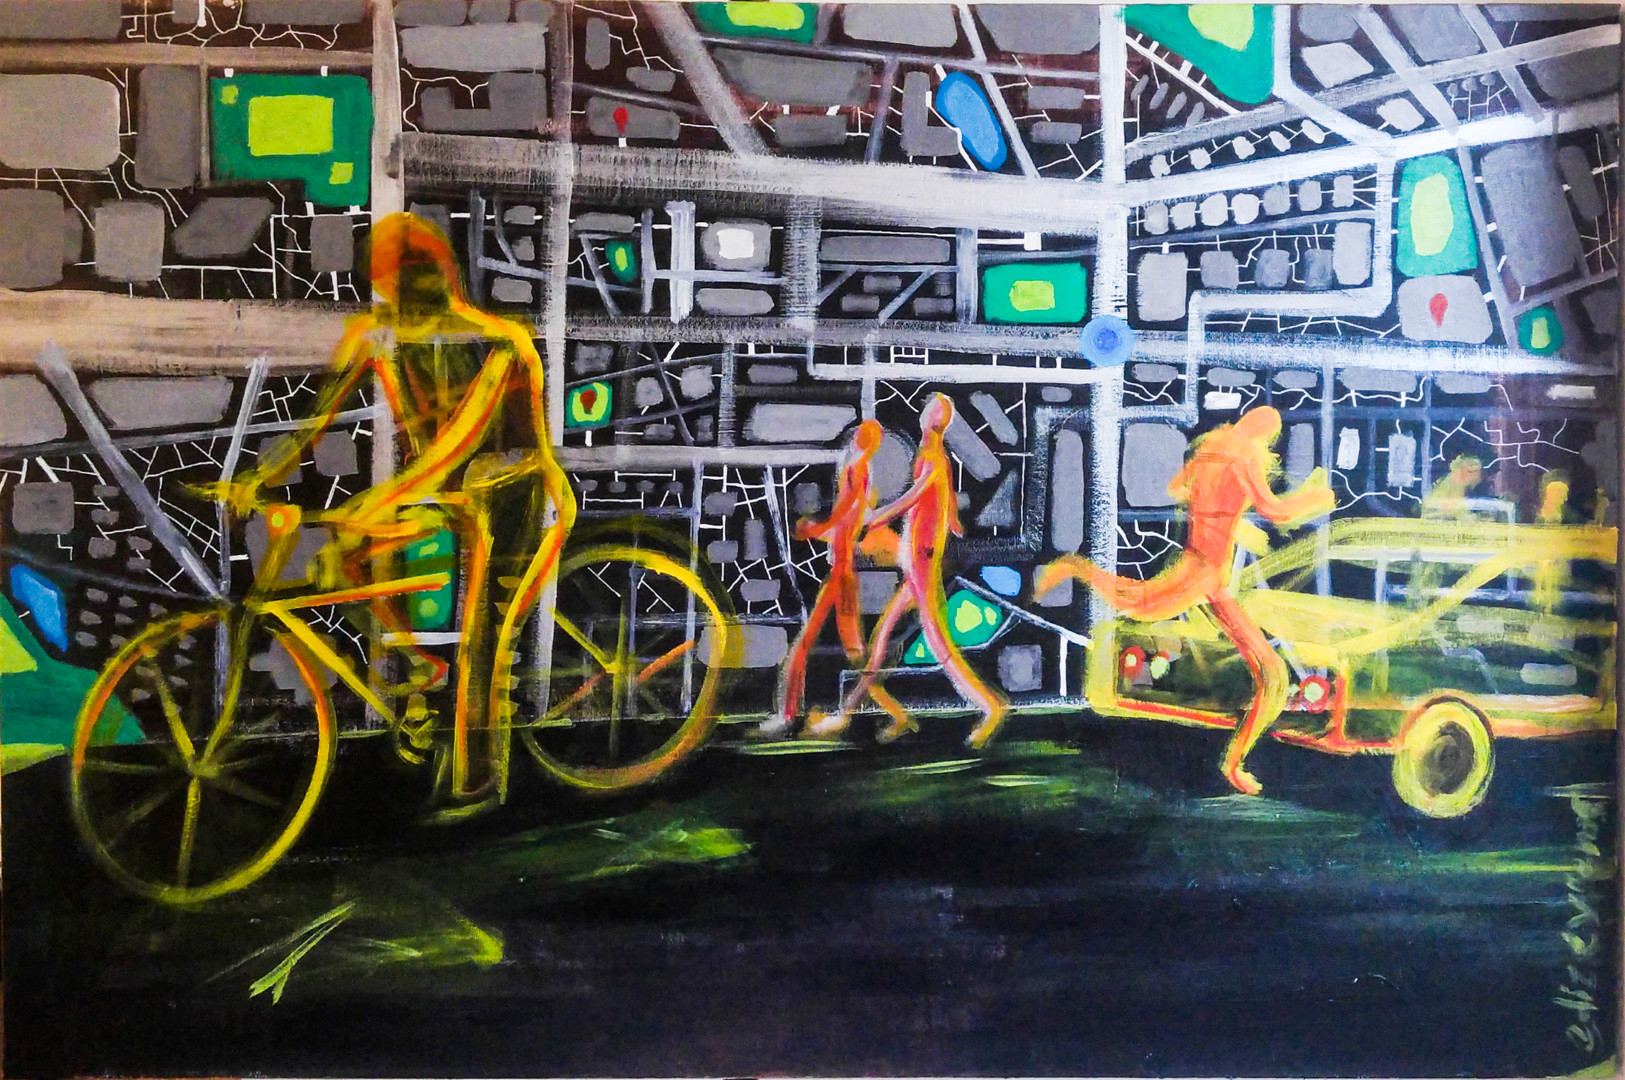 acrylic on canvas 24 x 36 inches